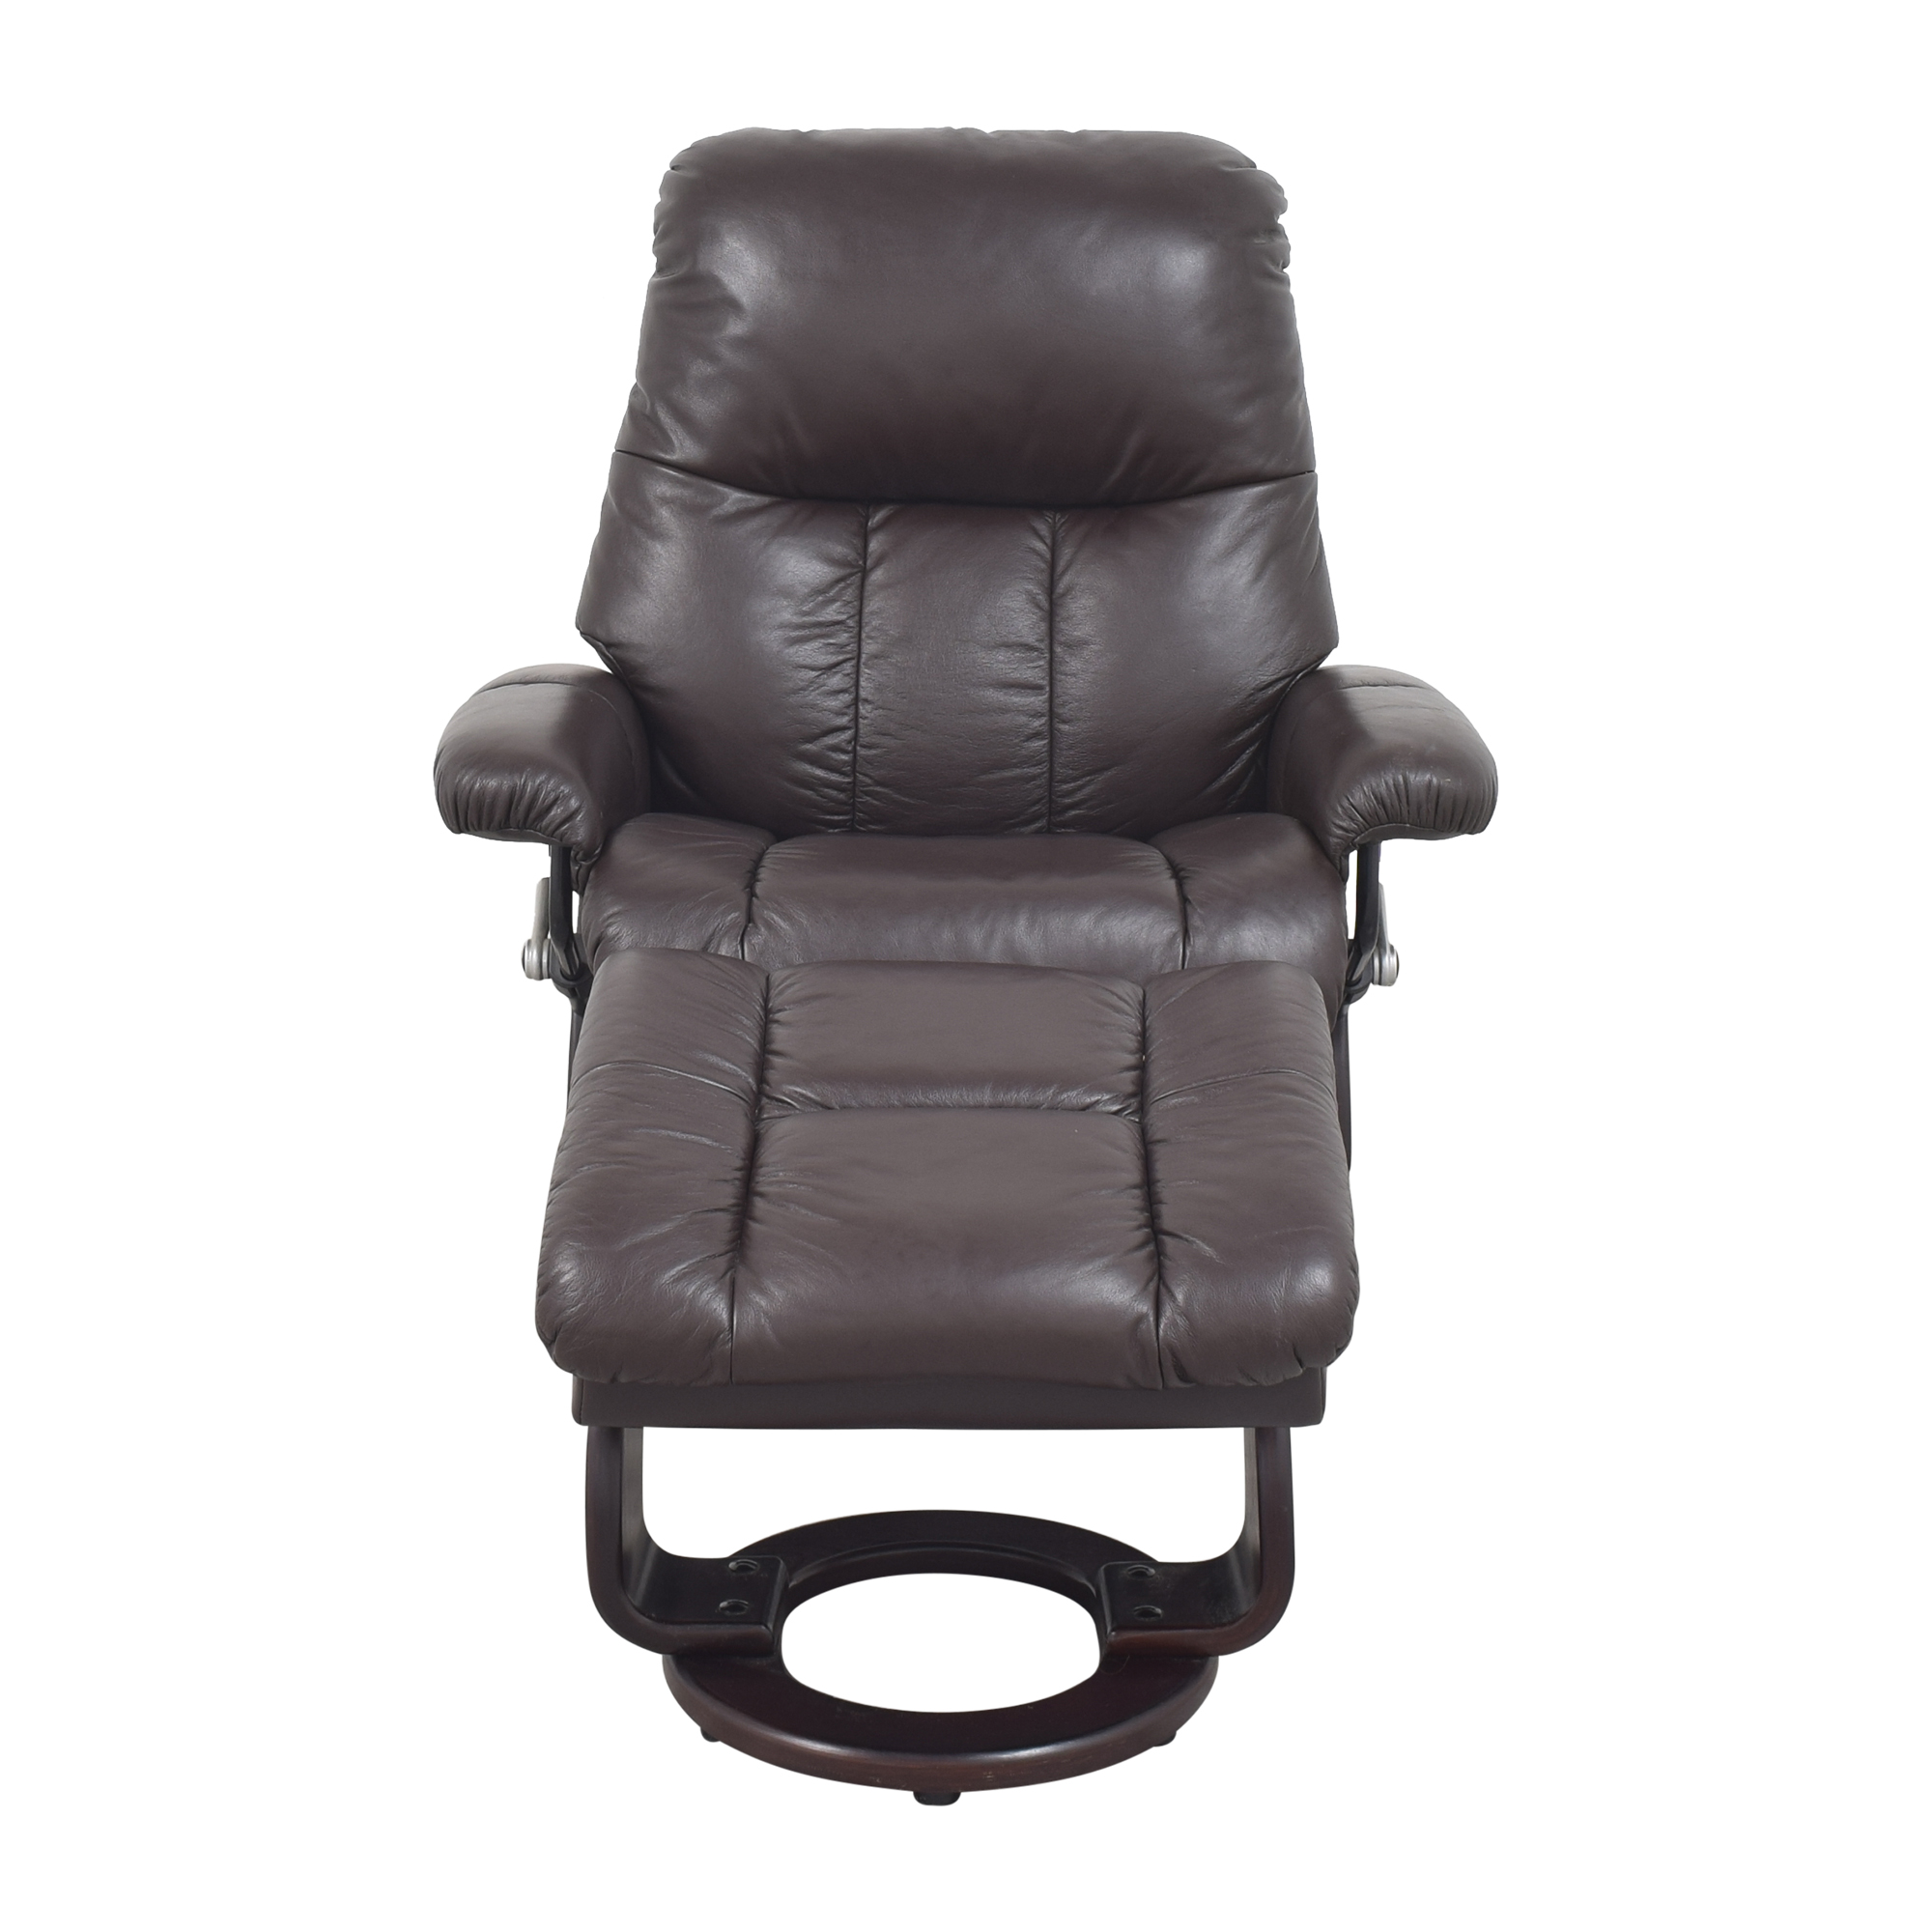 shop Benchmaster Benchmaster Recliner with Storage Ottoman online